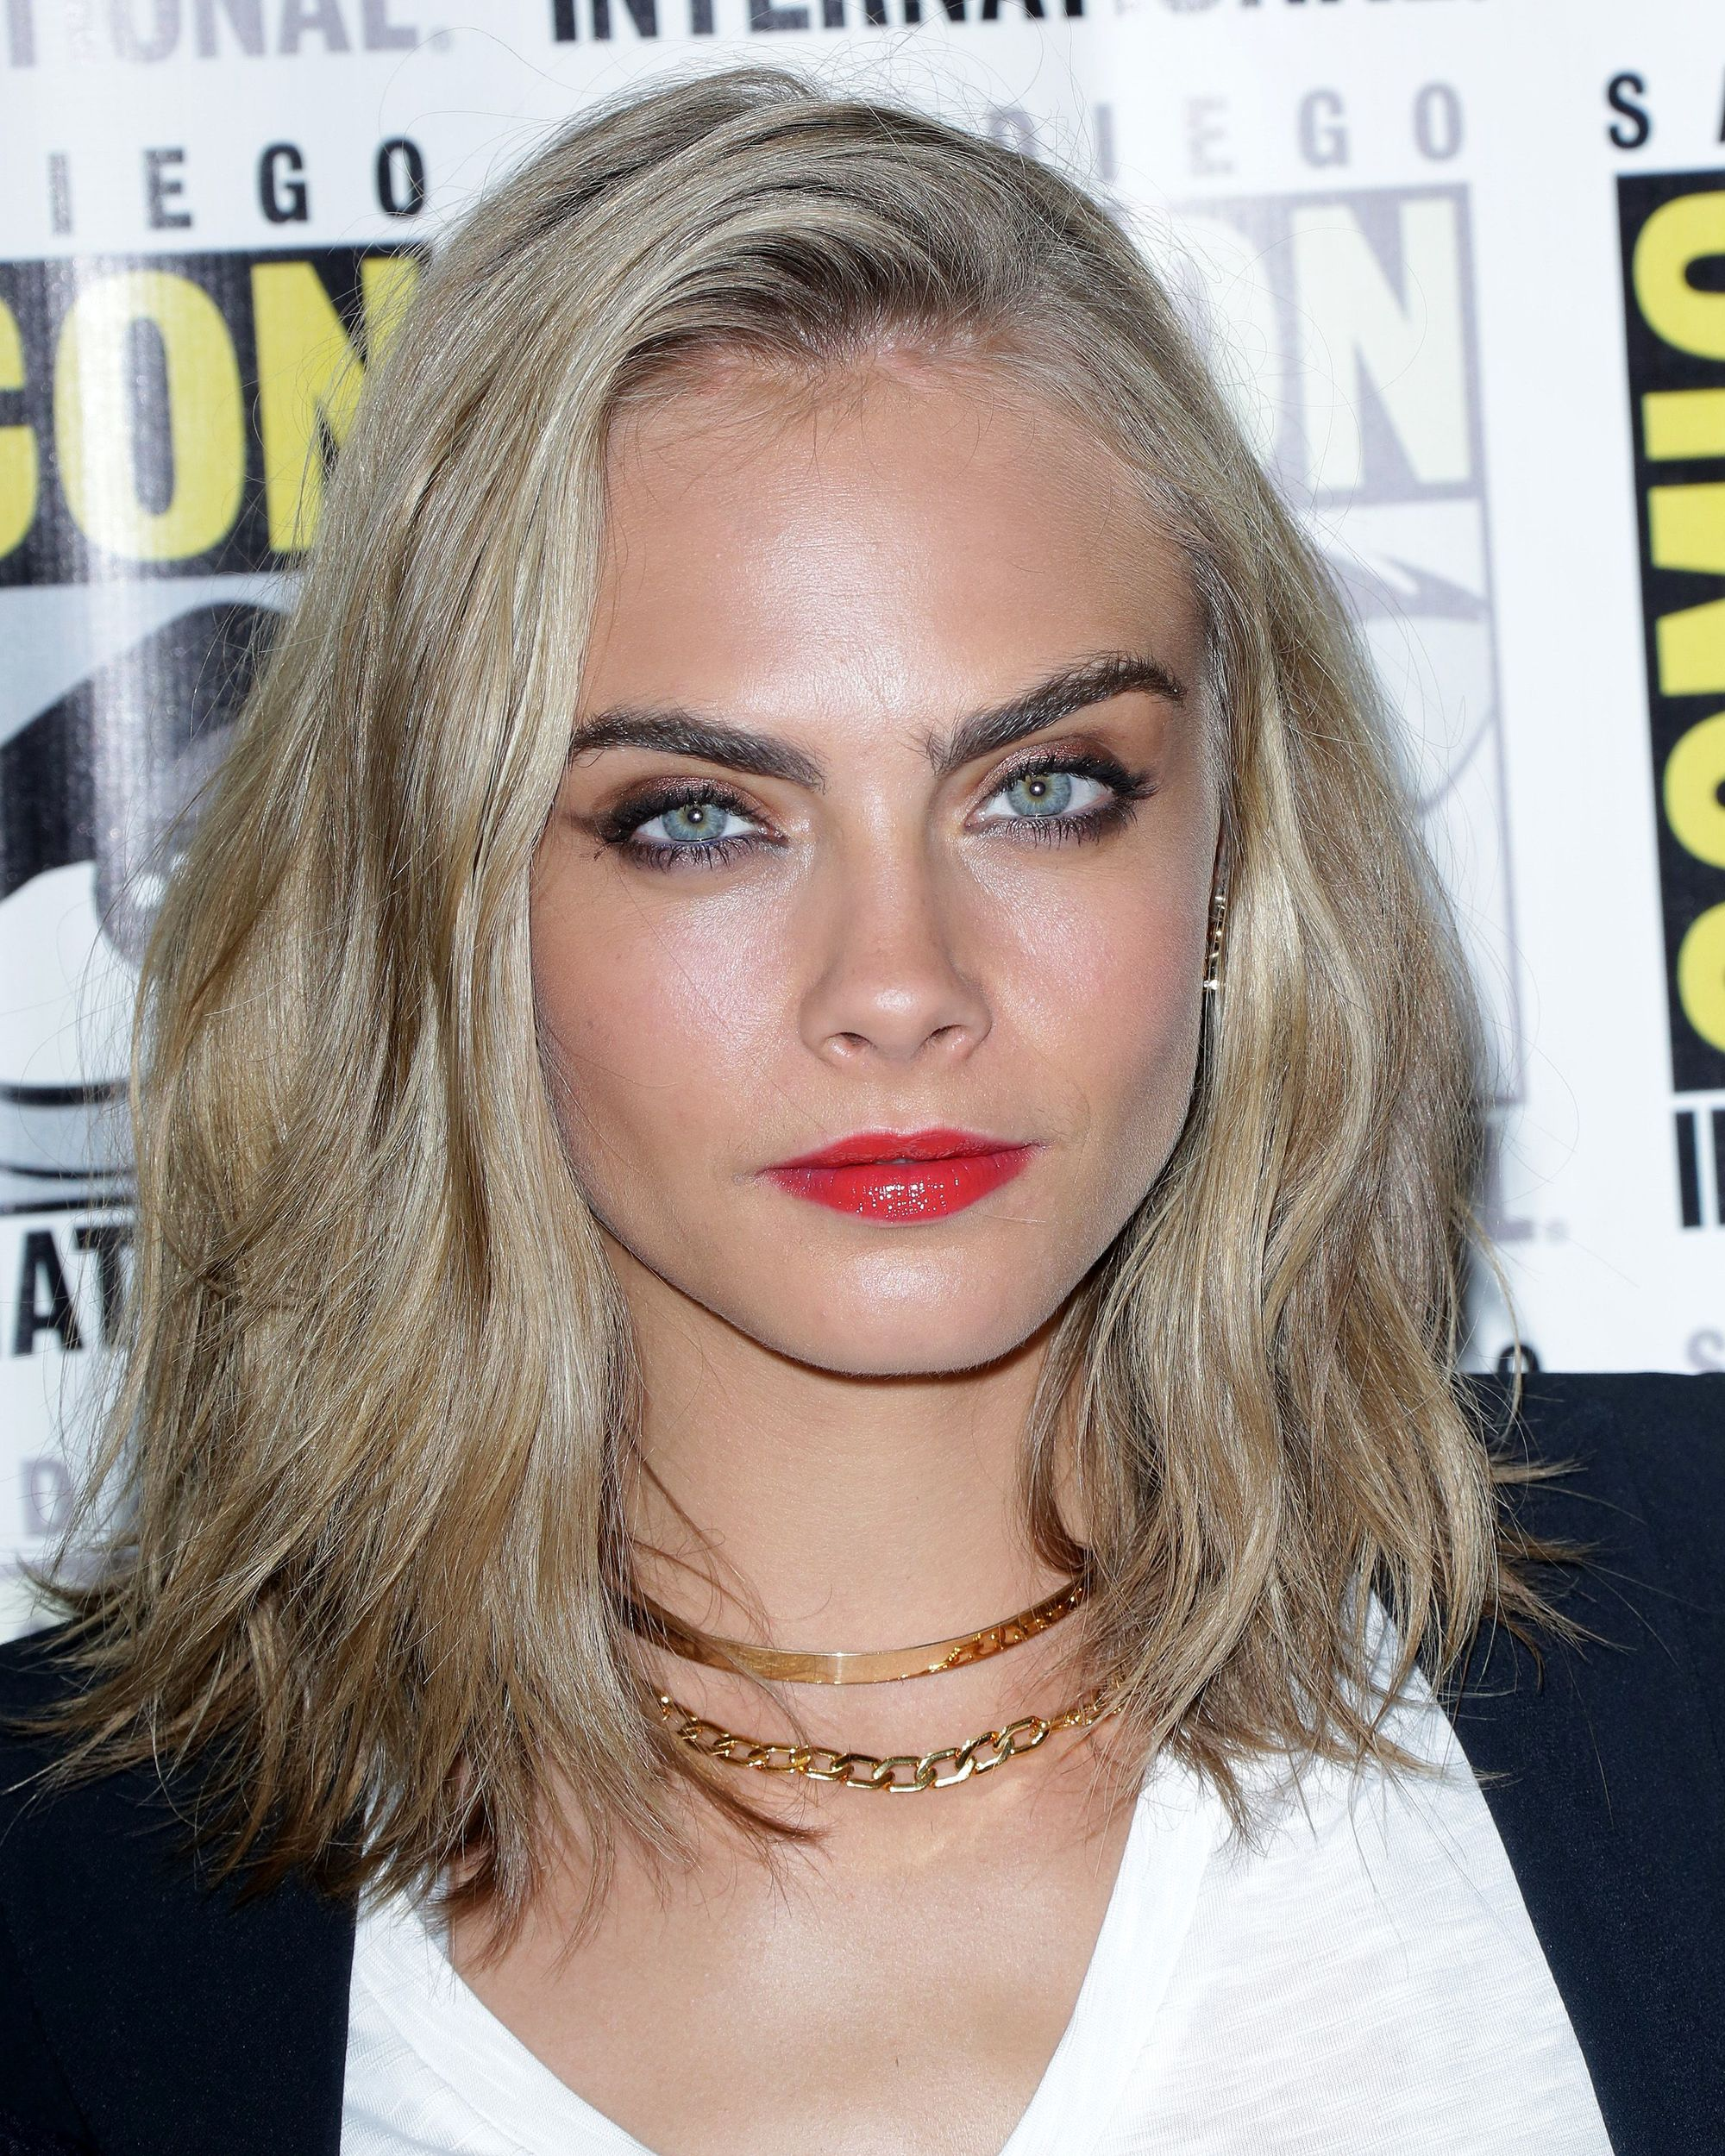 cara delevingne blonde wavy hair styled in a long choppy bob